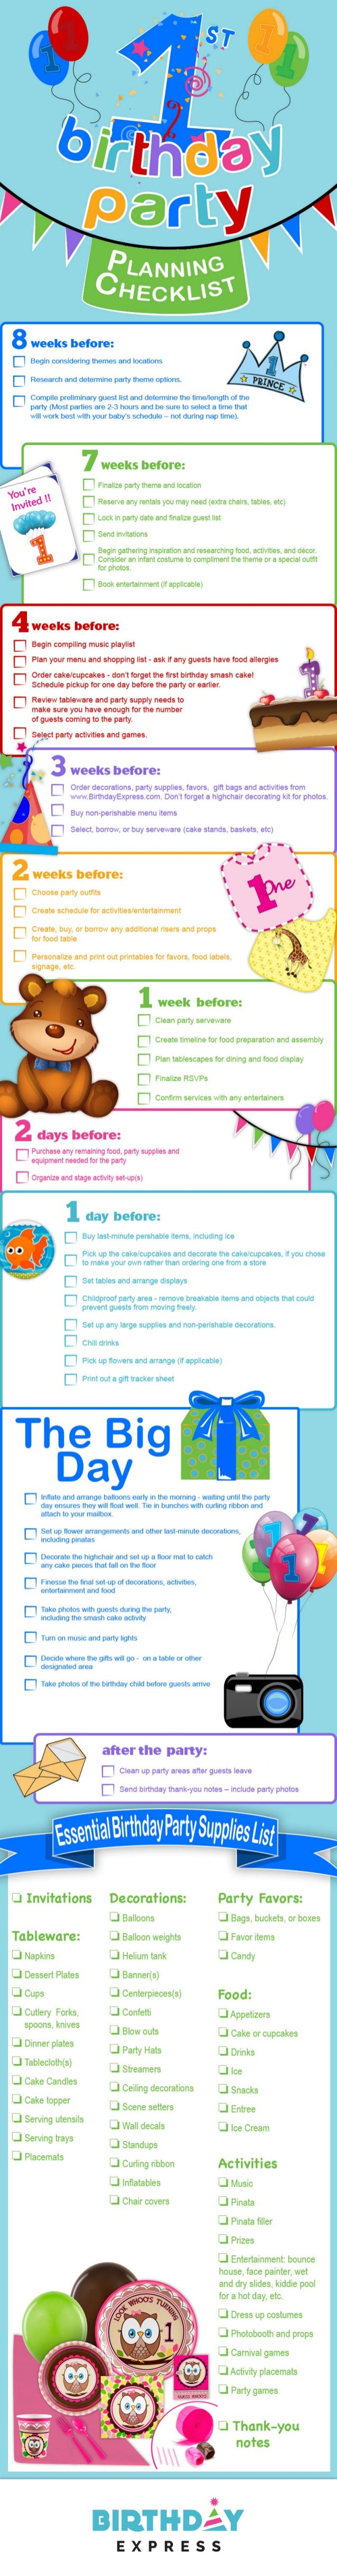 Remarkable image in 1st birthday party checklist printable